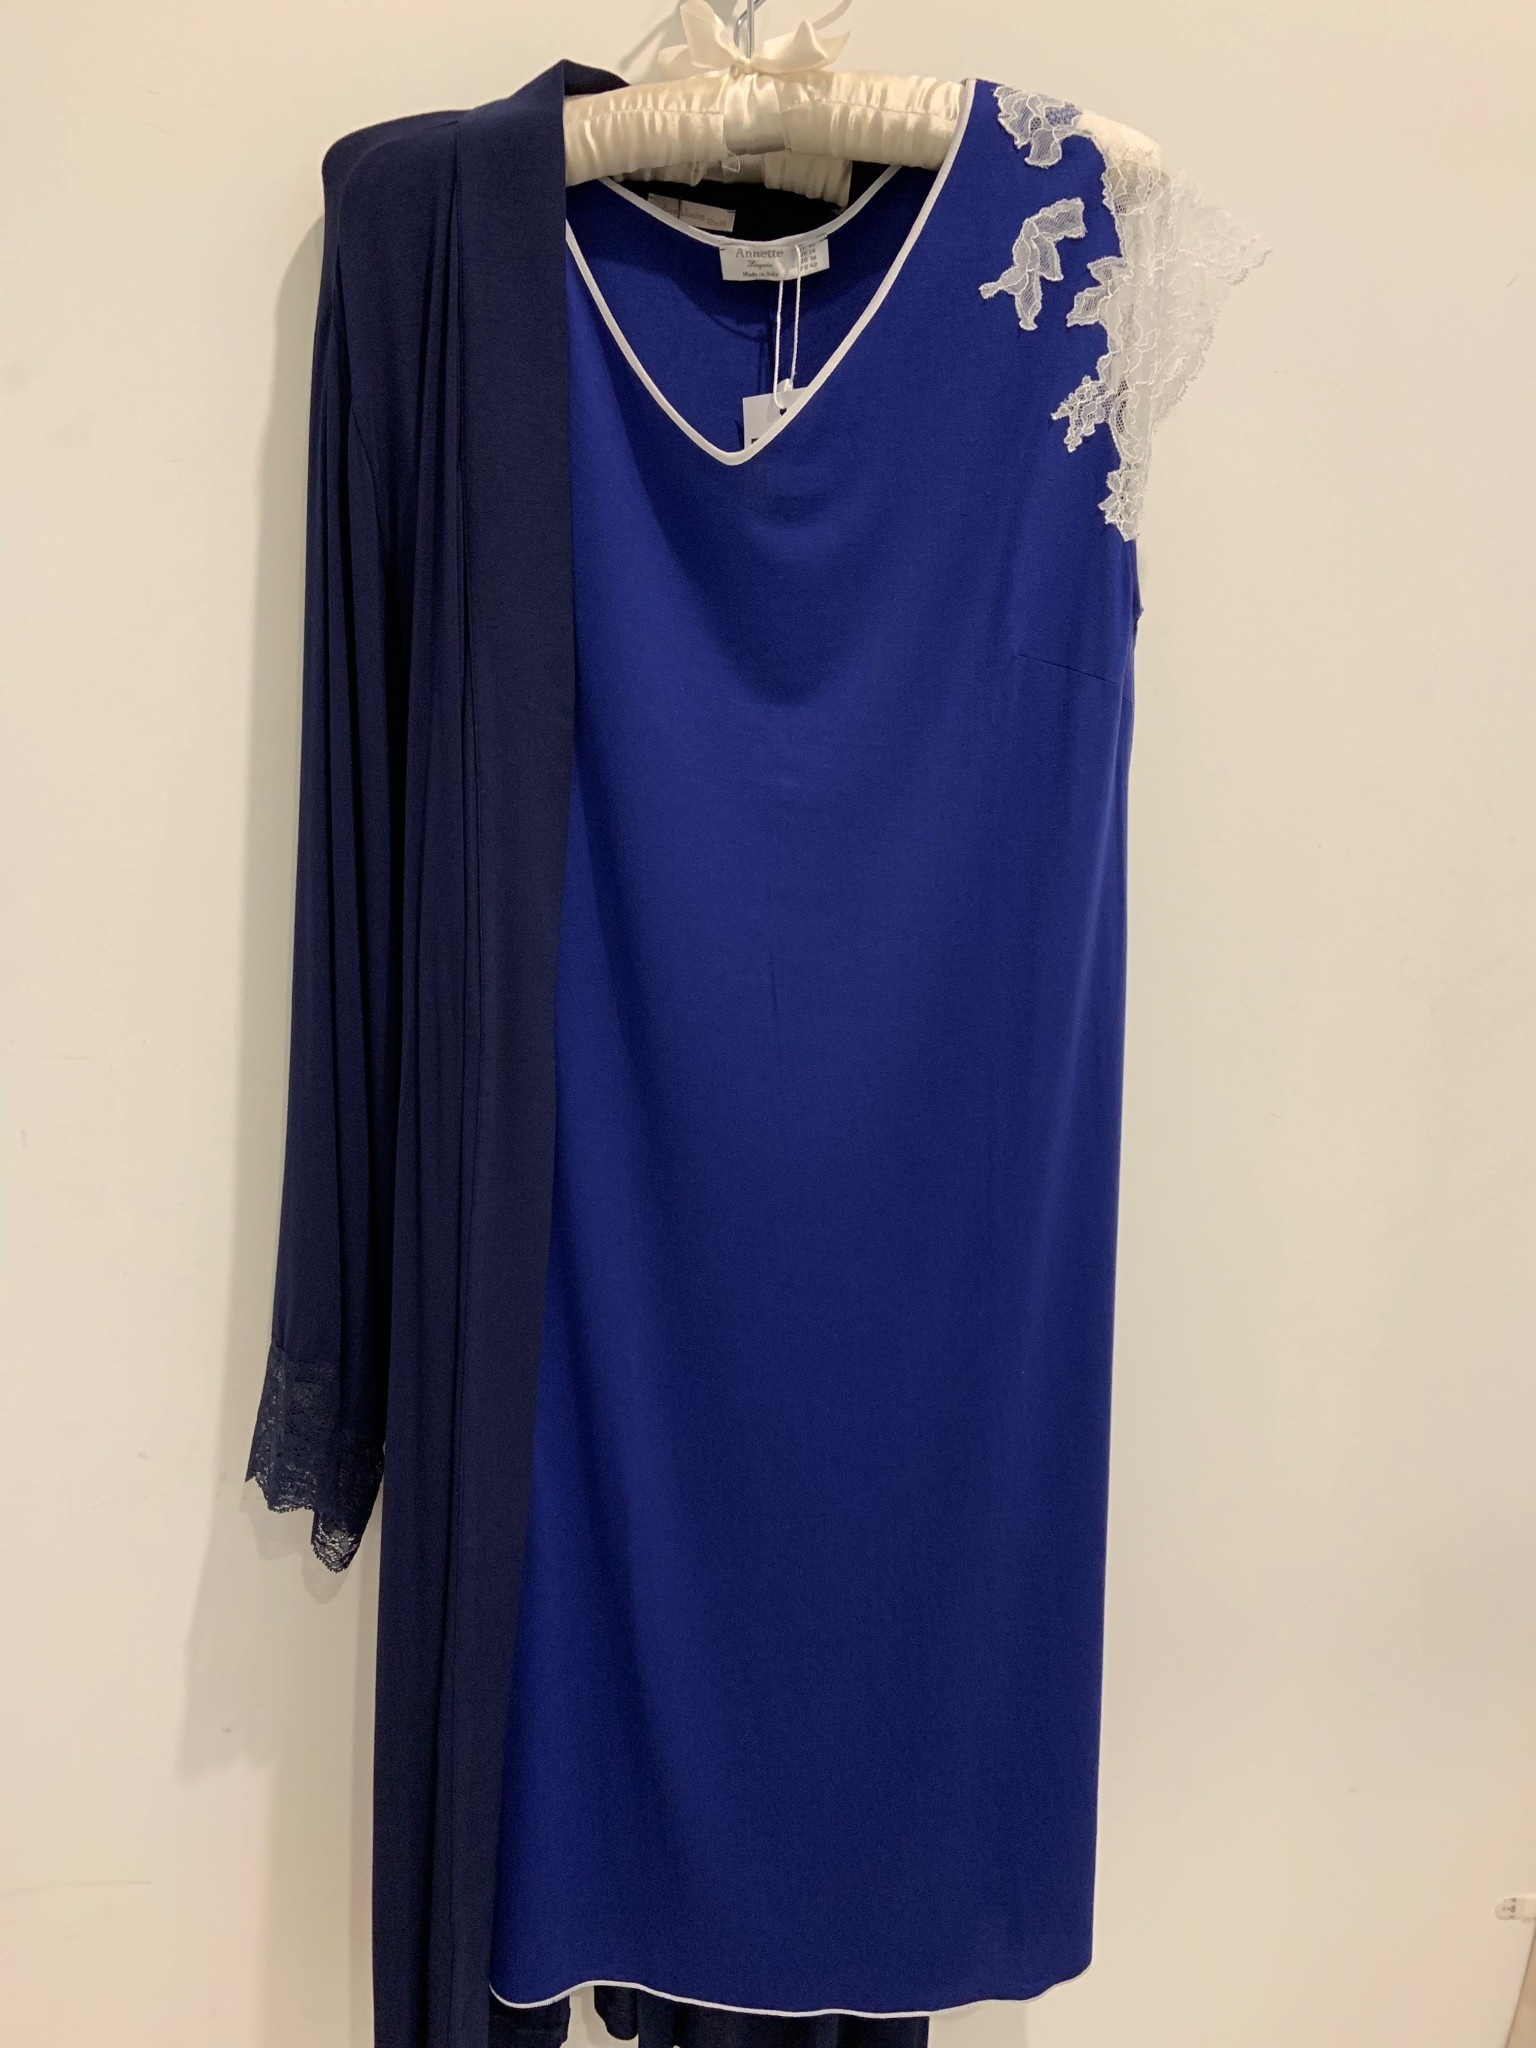 Annette Annette Canotta Maglia Short Sleeve Short Dress Royal/Panna 1419